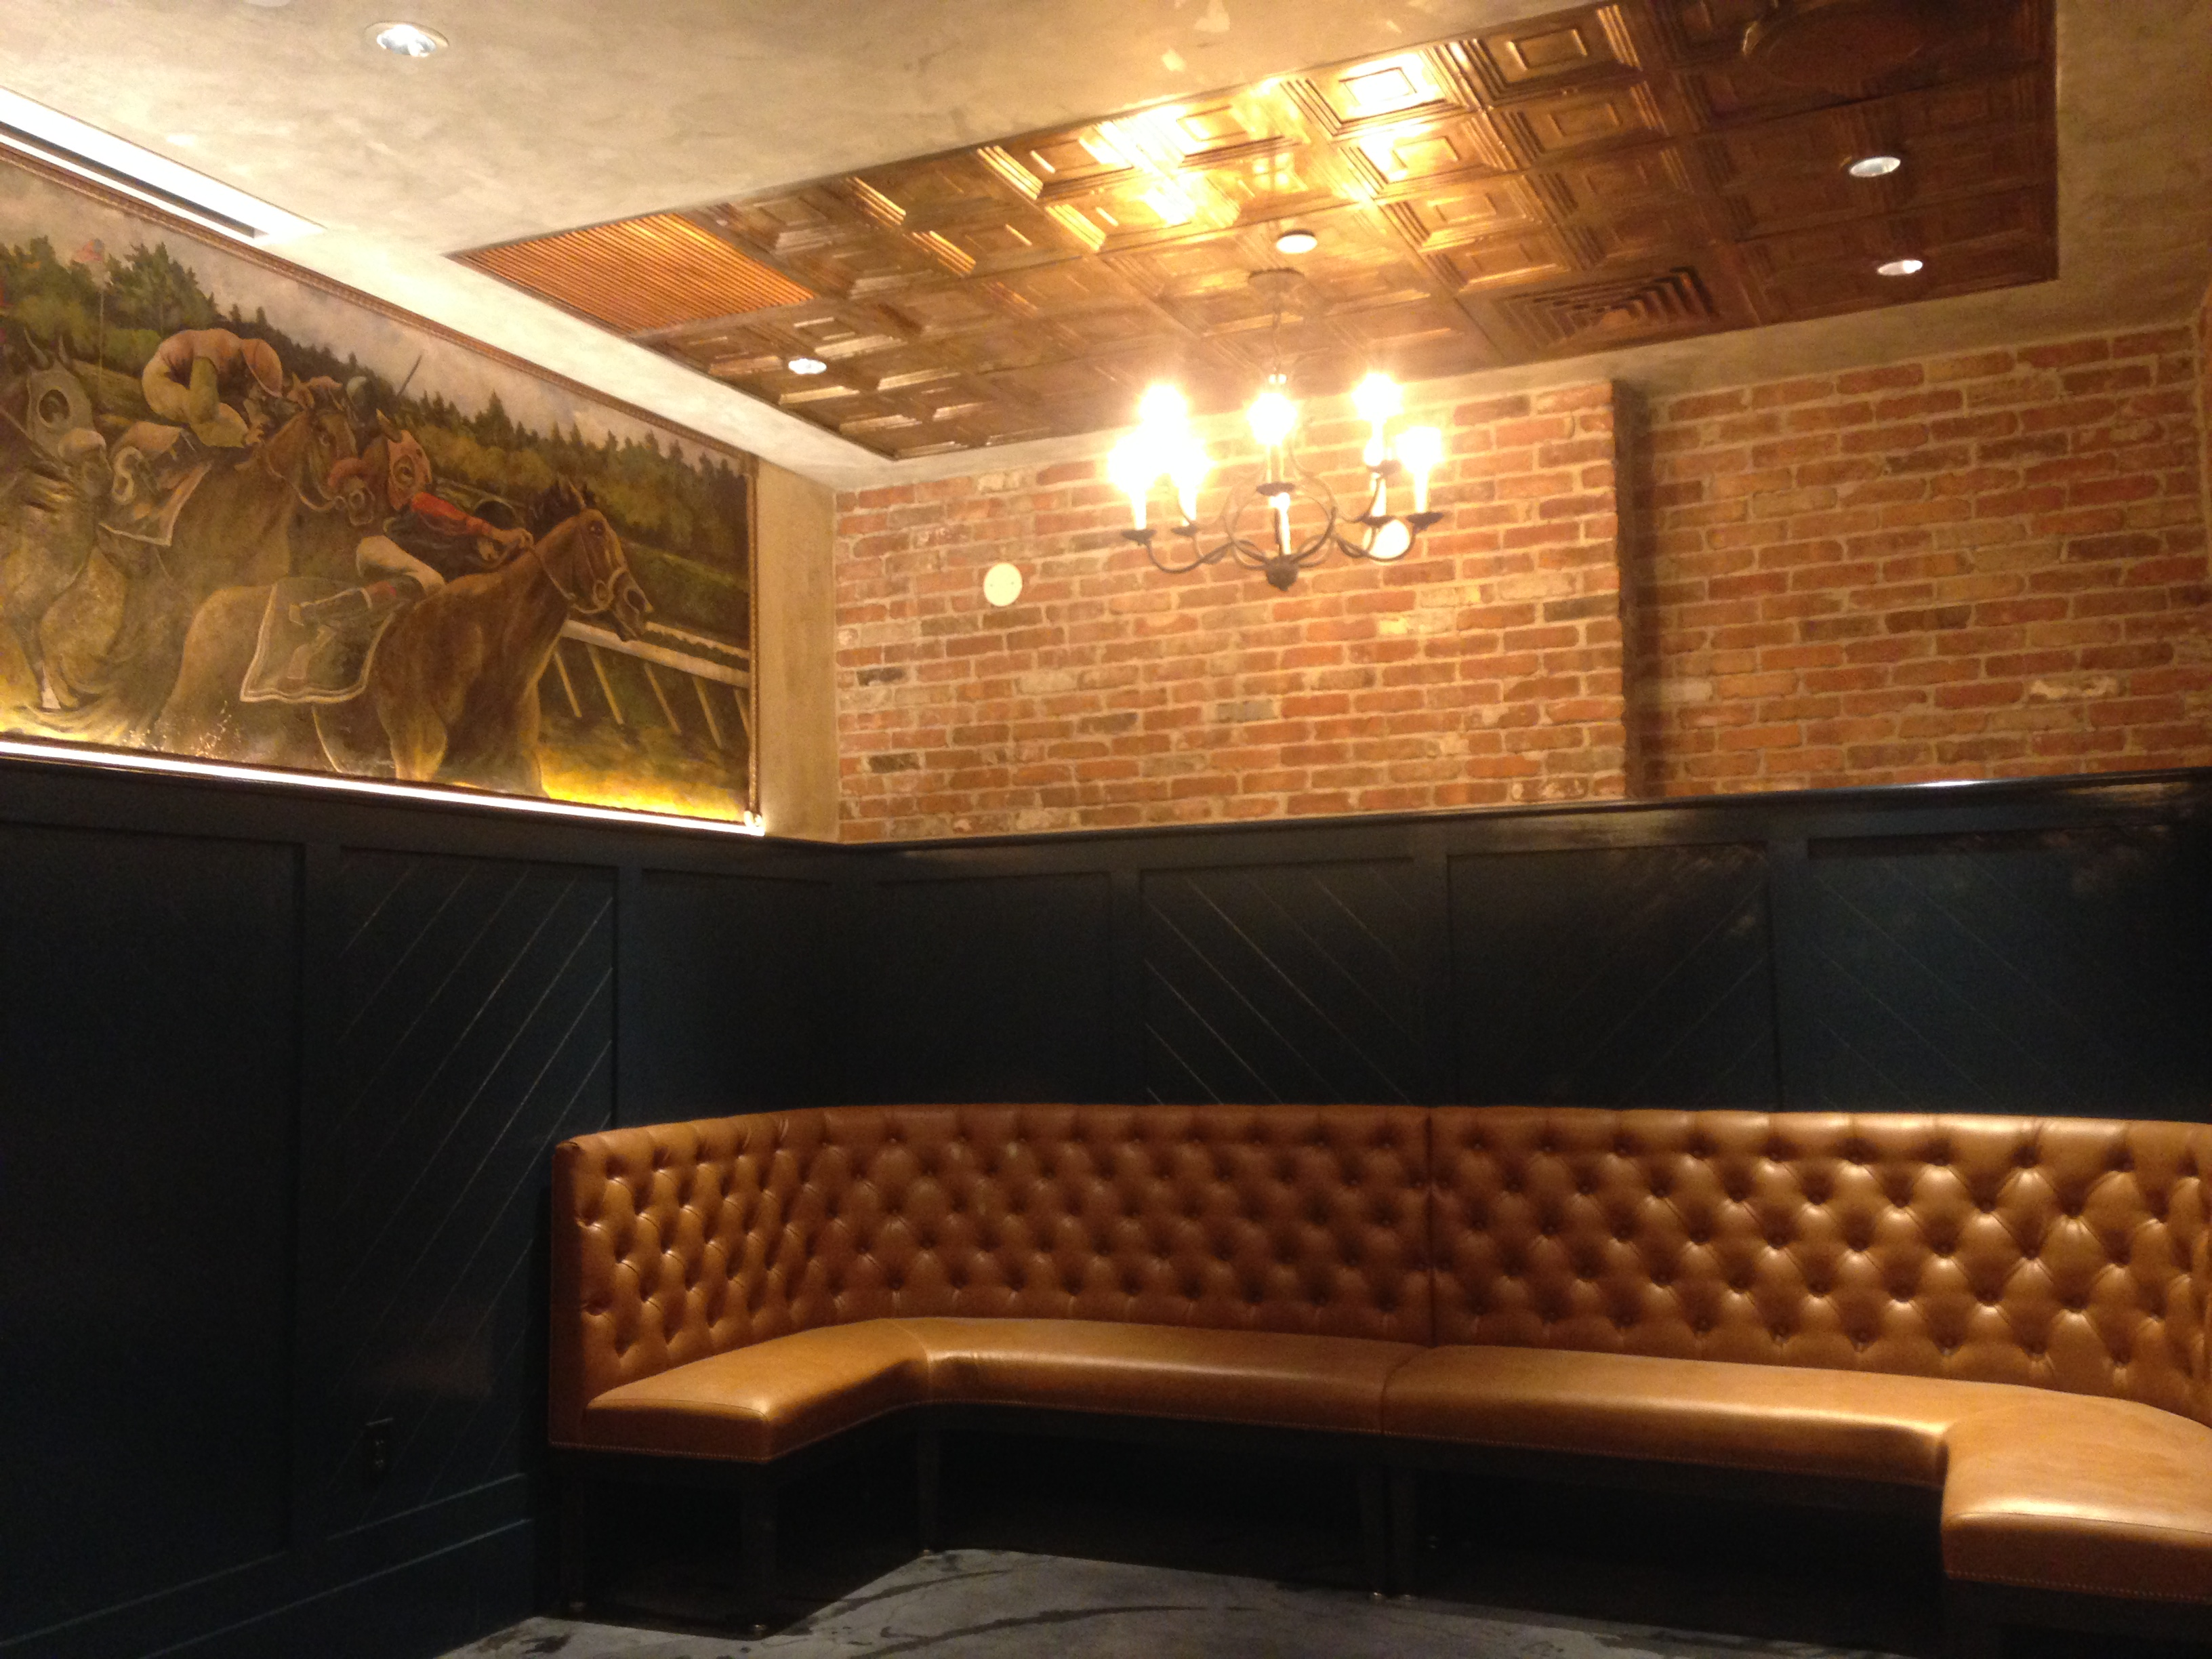 The private dining room at Worden Hall features a mural of the Saratoga race track by Mark Grundig